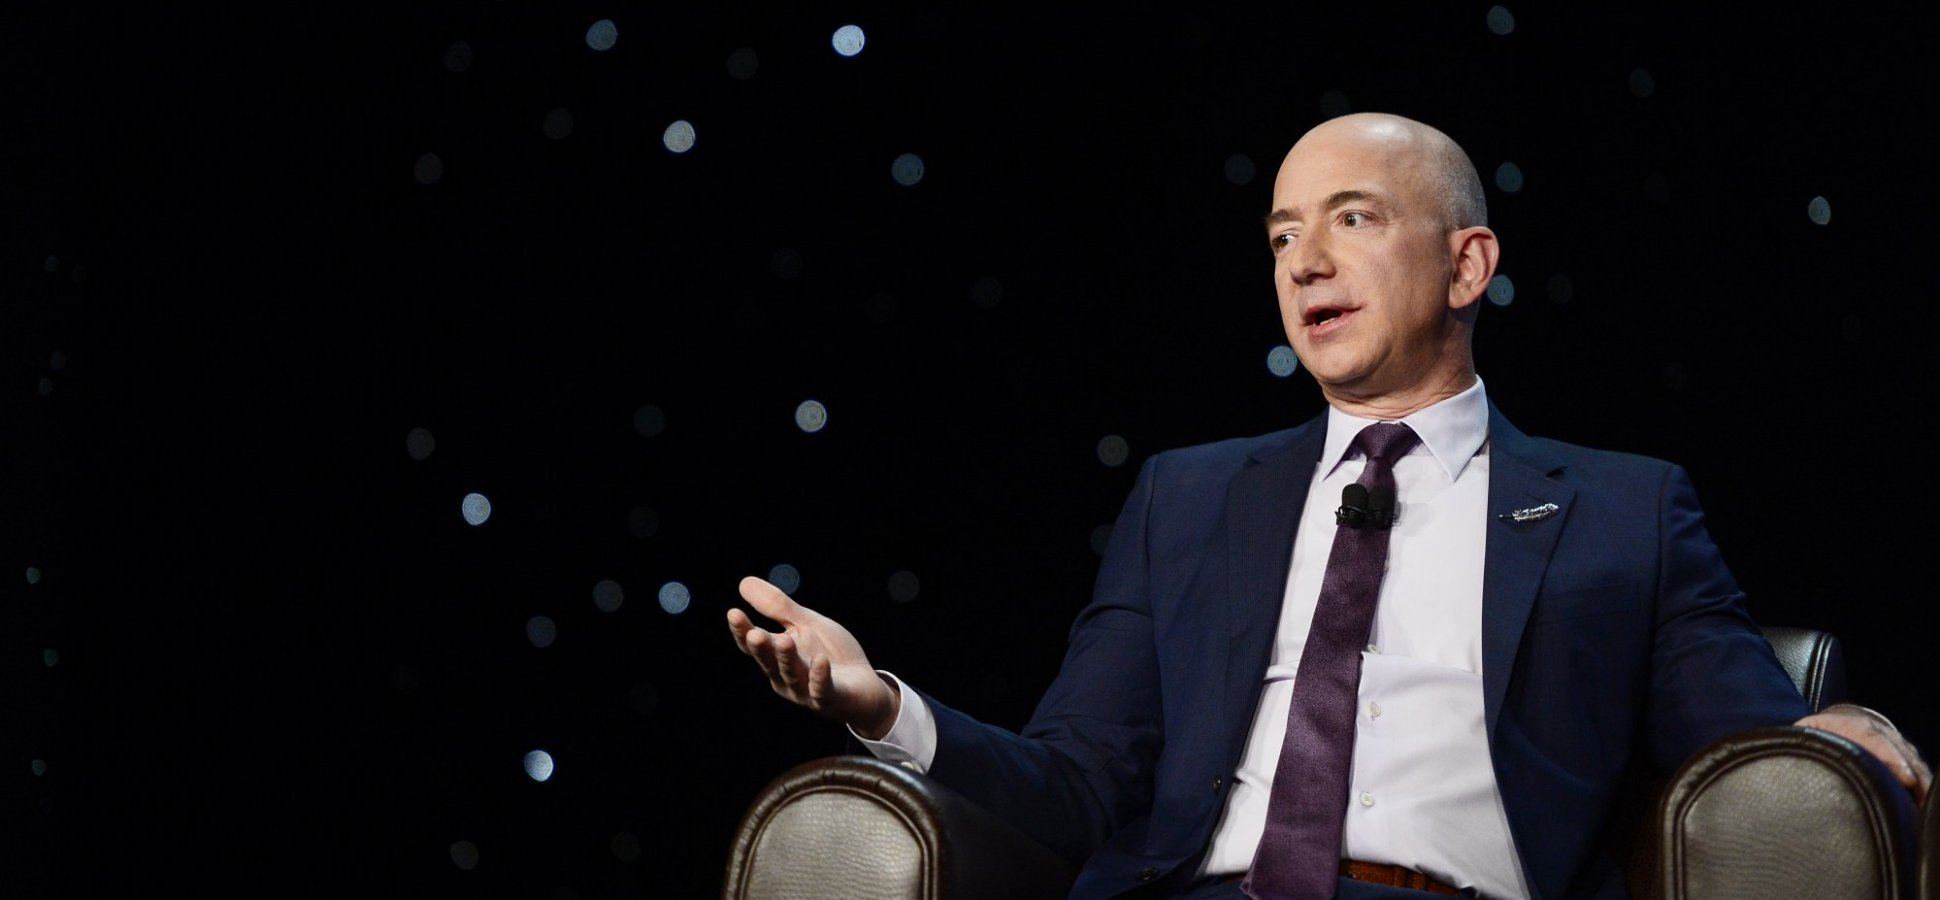 This Is the Number 1 Sign of High Intelligence, According to Jeff Bezos | Inc.com